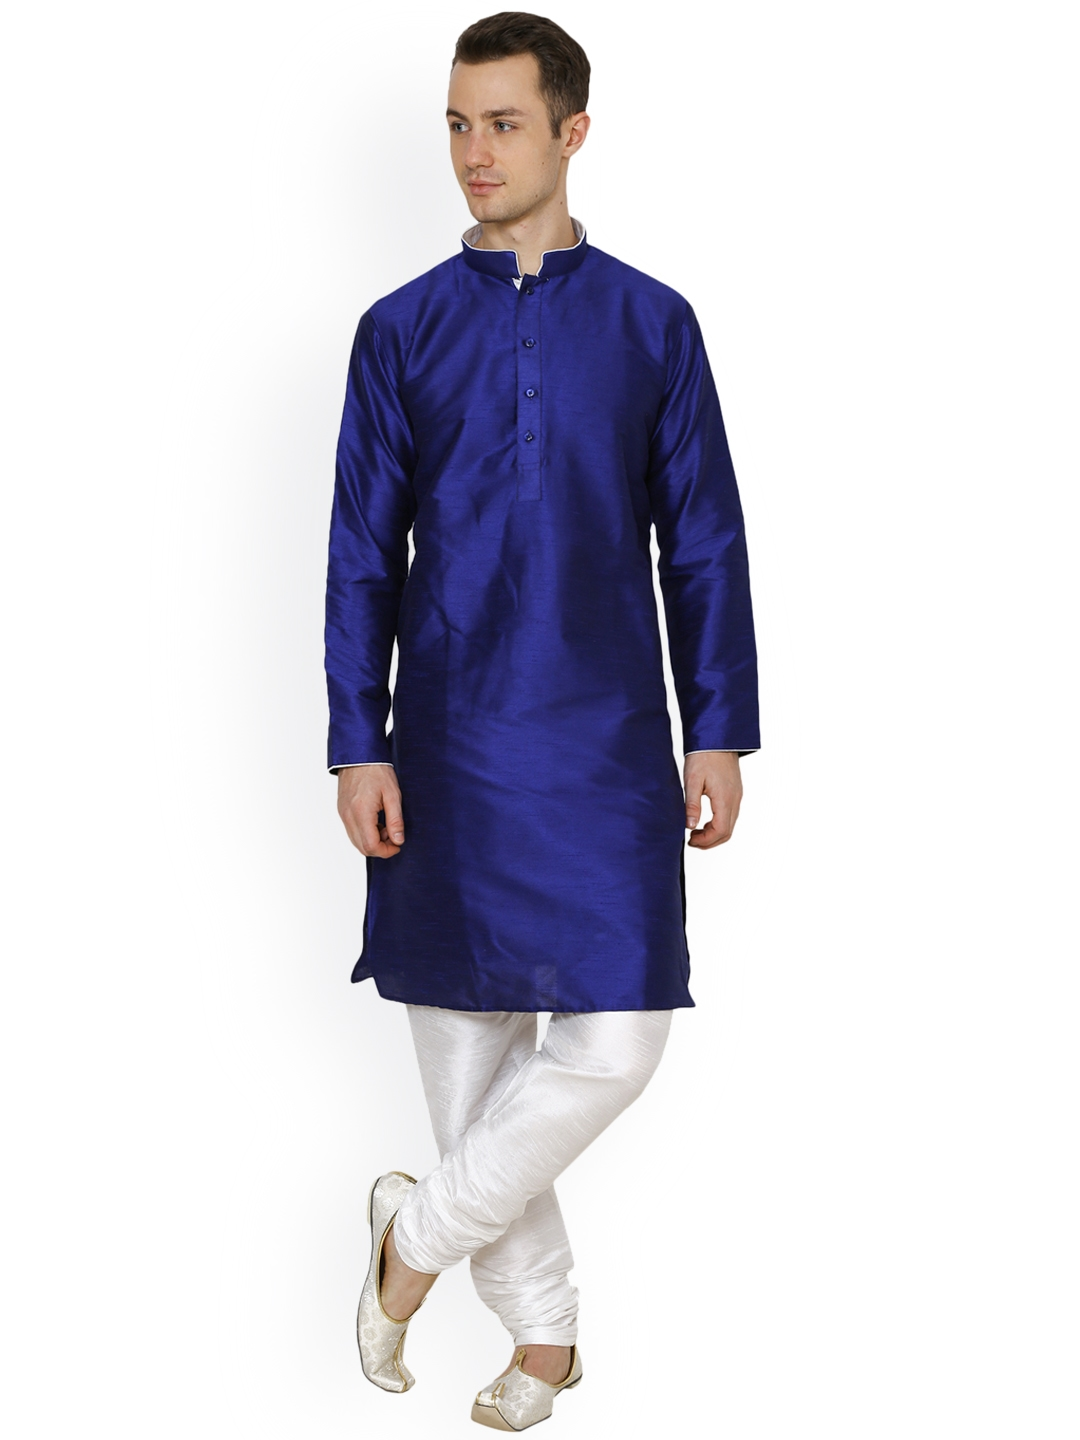 064da578e2 Buy Royal Kurta Men's Dupion Silk Kurta Pyjama Set - Kurta Sets for ...